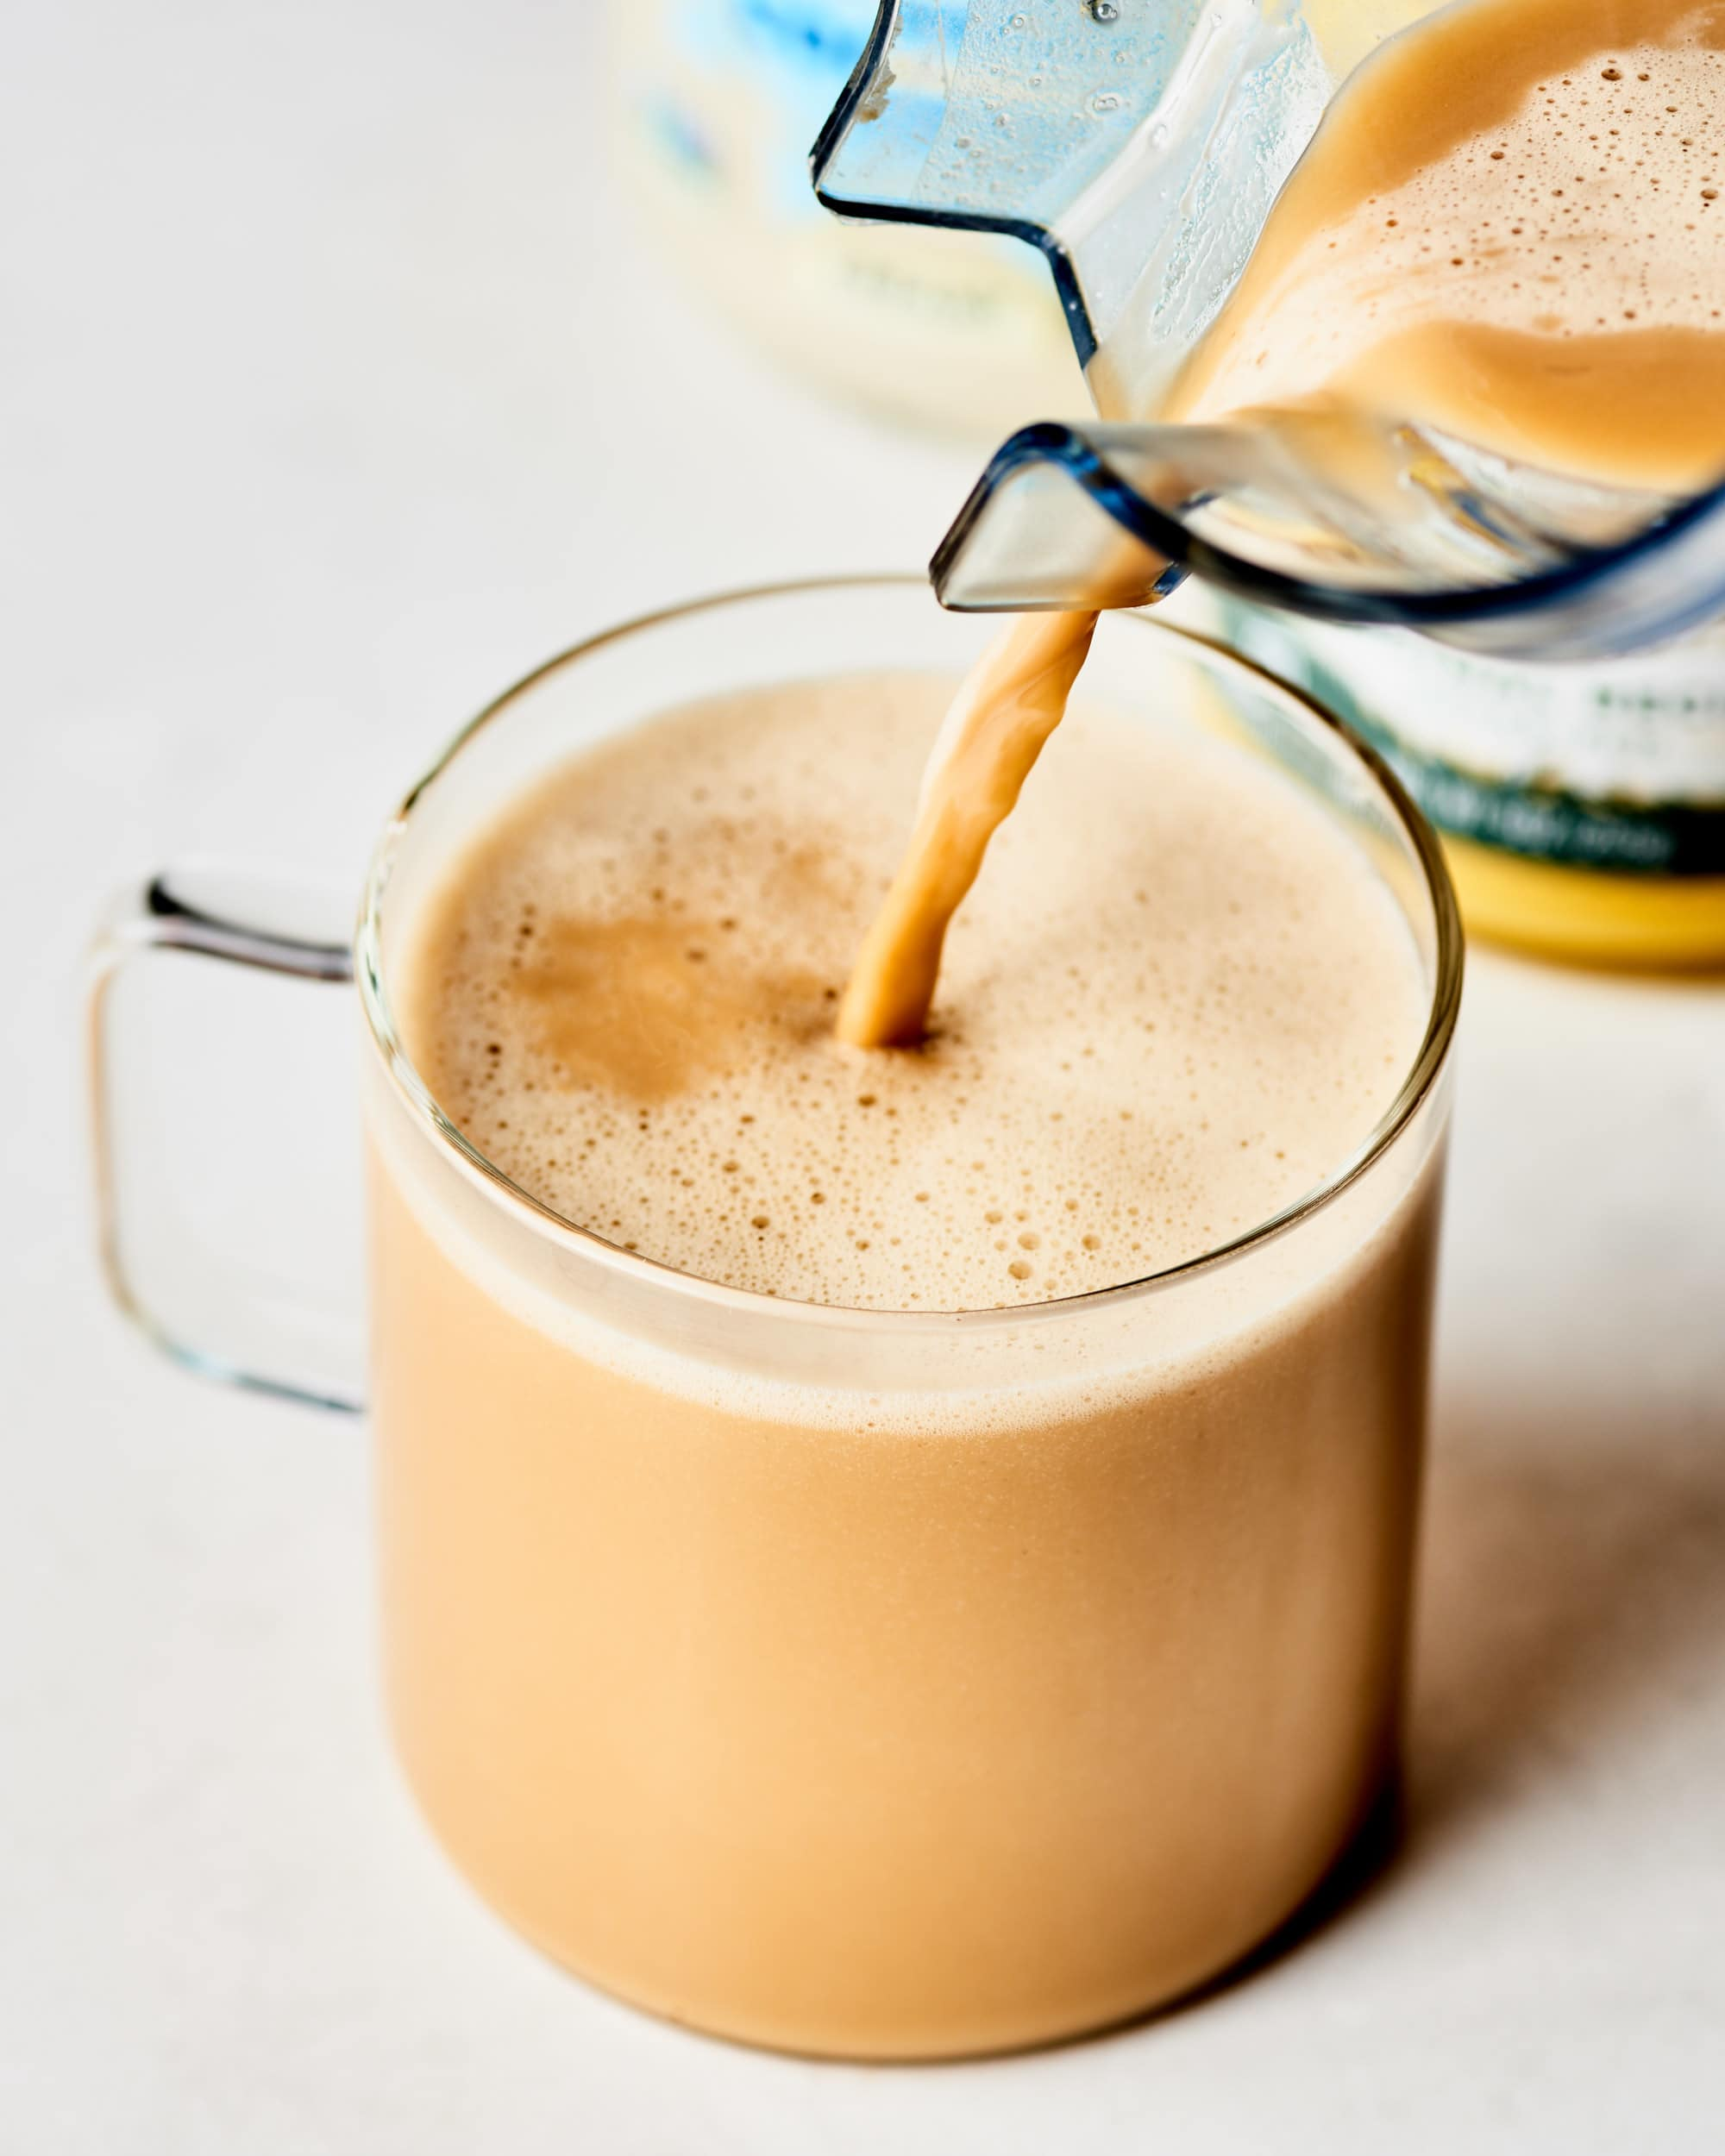 Here's How to Make Whole30 Coffee Creamer with Just Two Ingredients